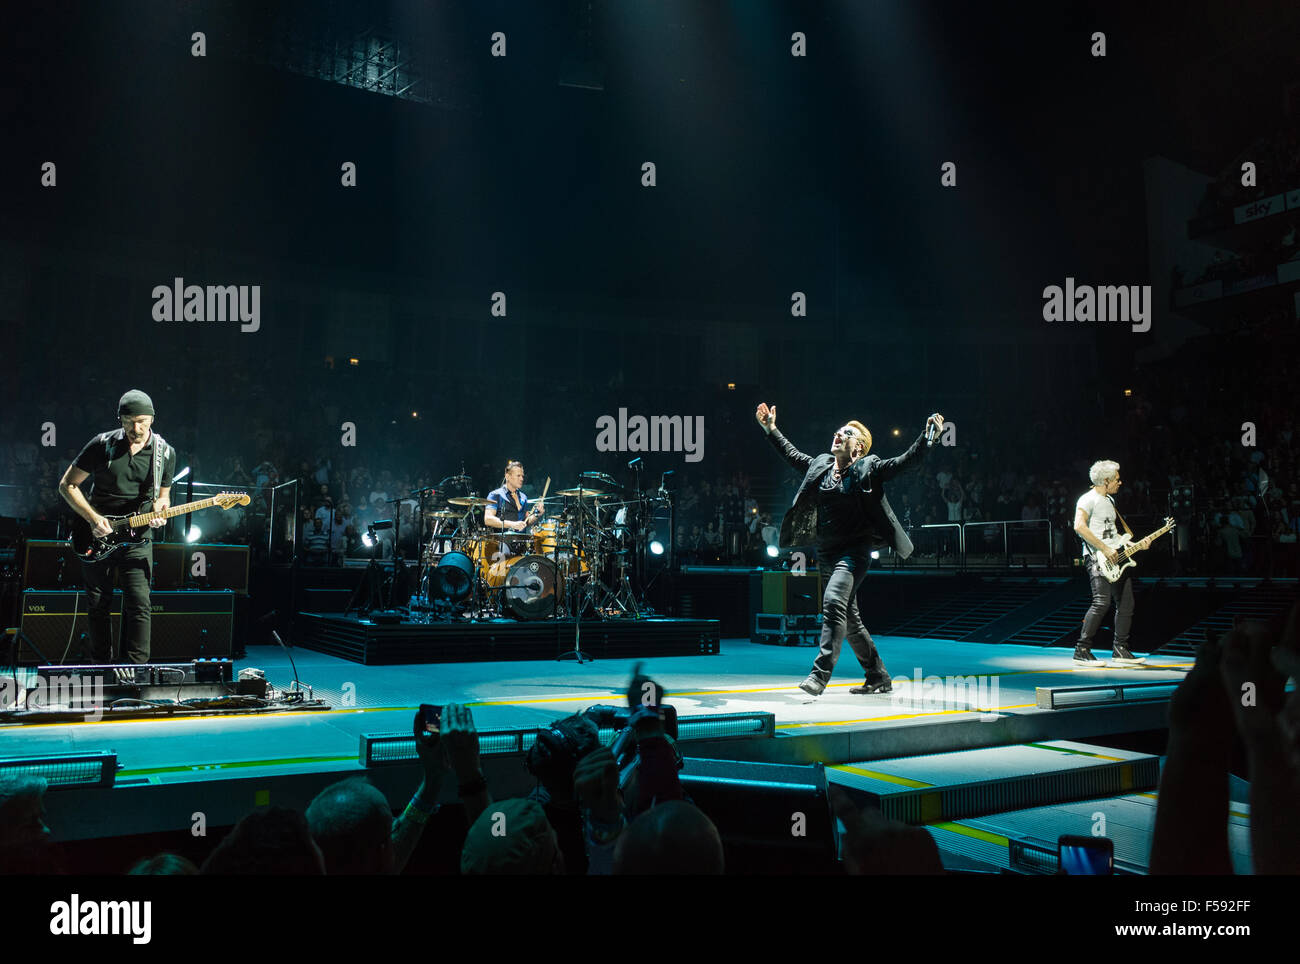 U2 performing live at London O2 on the Innocence and Experience tour Credit:  david pearson/Alamy Live News Stock Photo